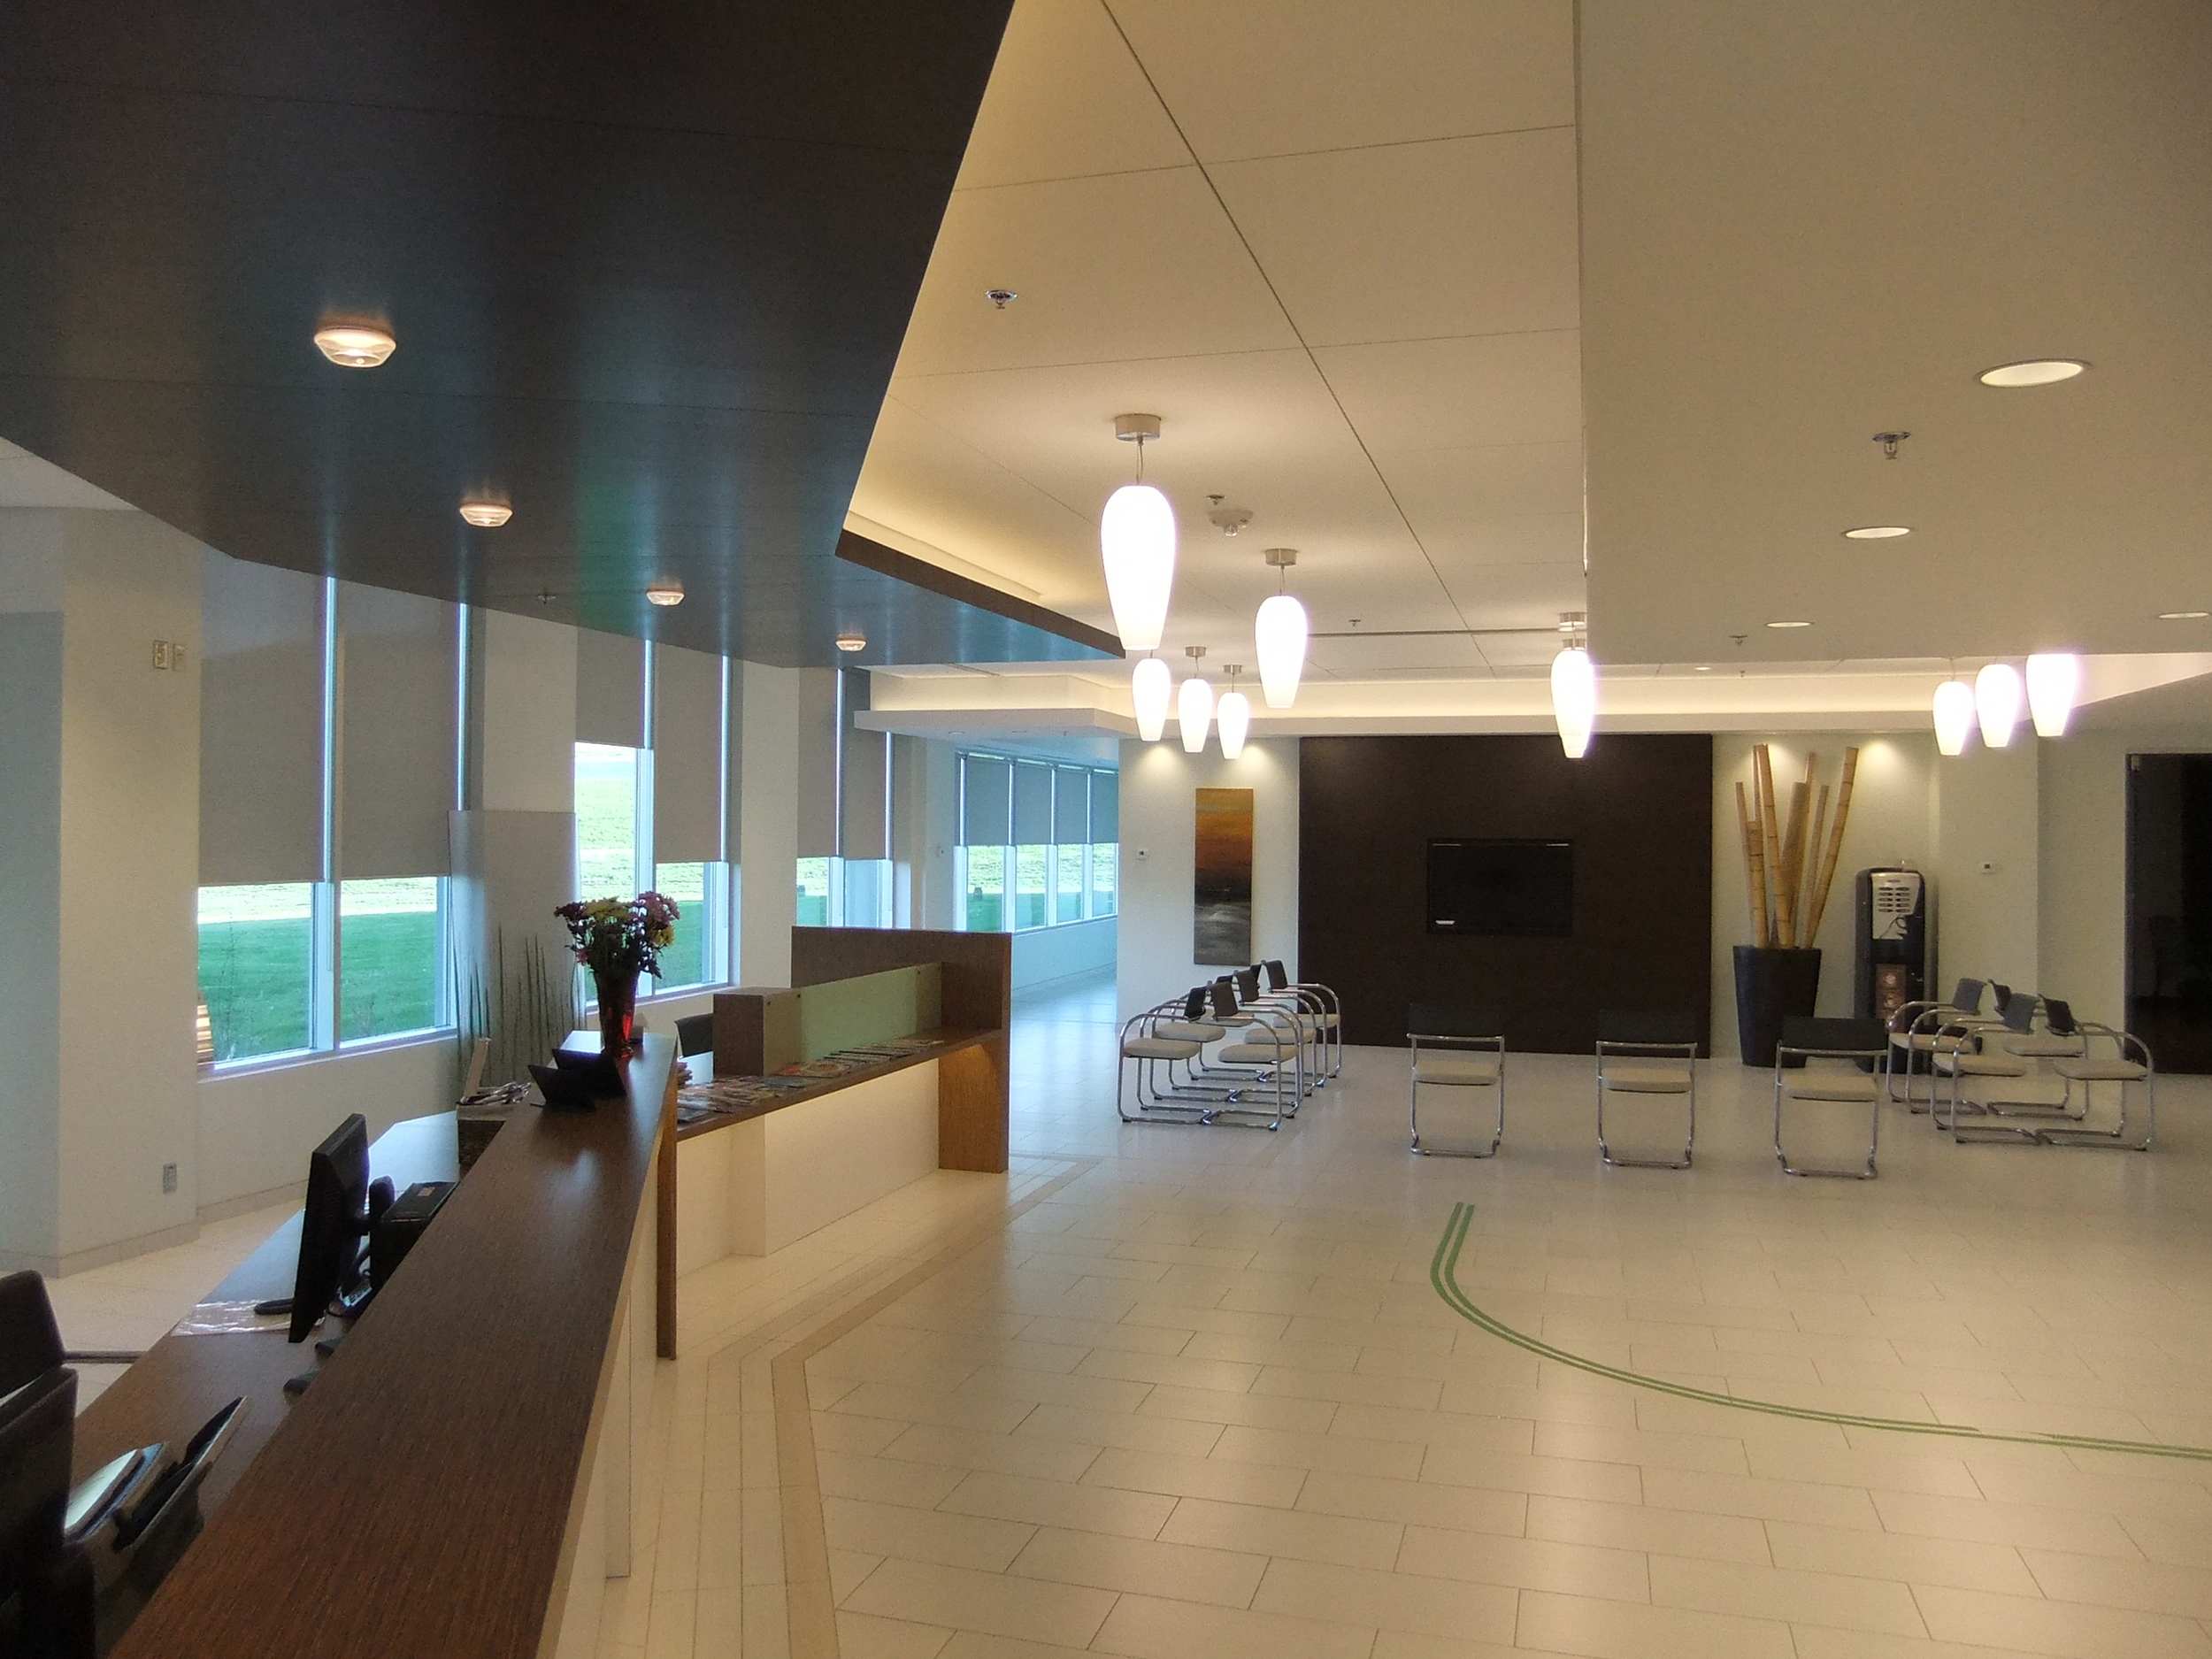 High_end_finishes_and_design_main_reception_and_waiting_area.jpg